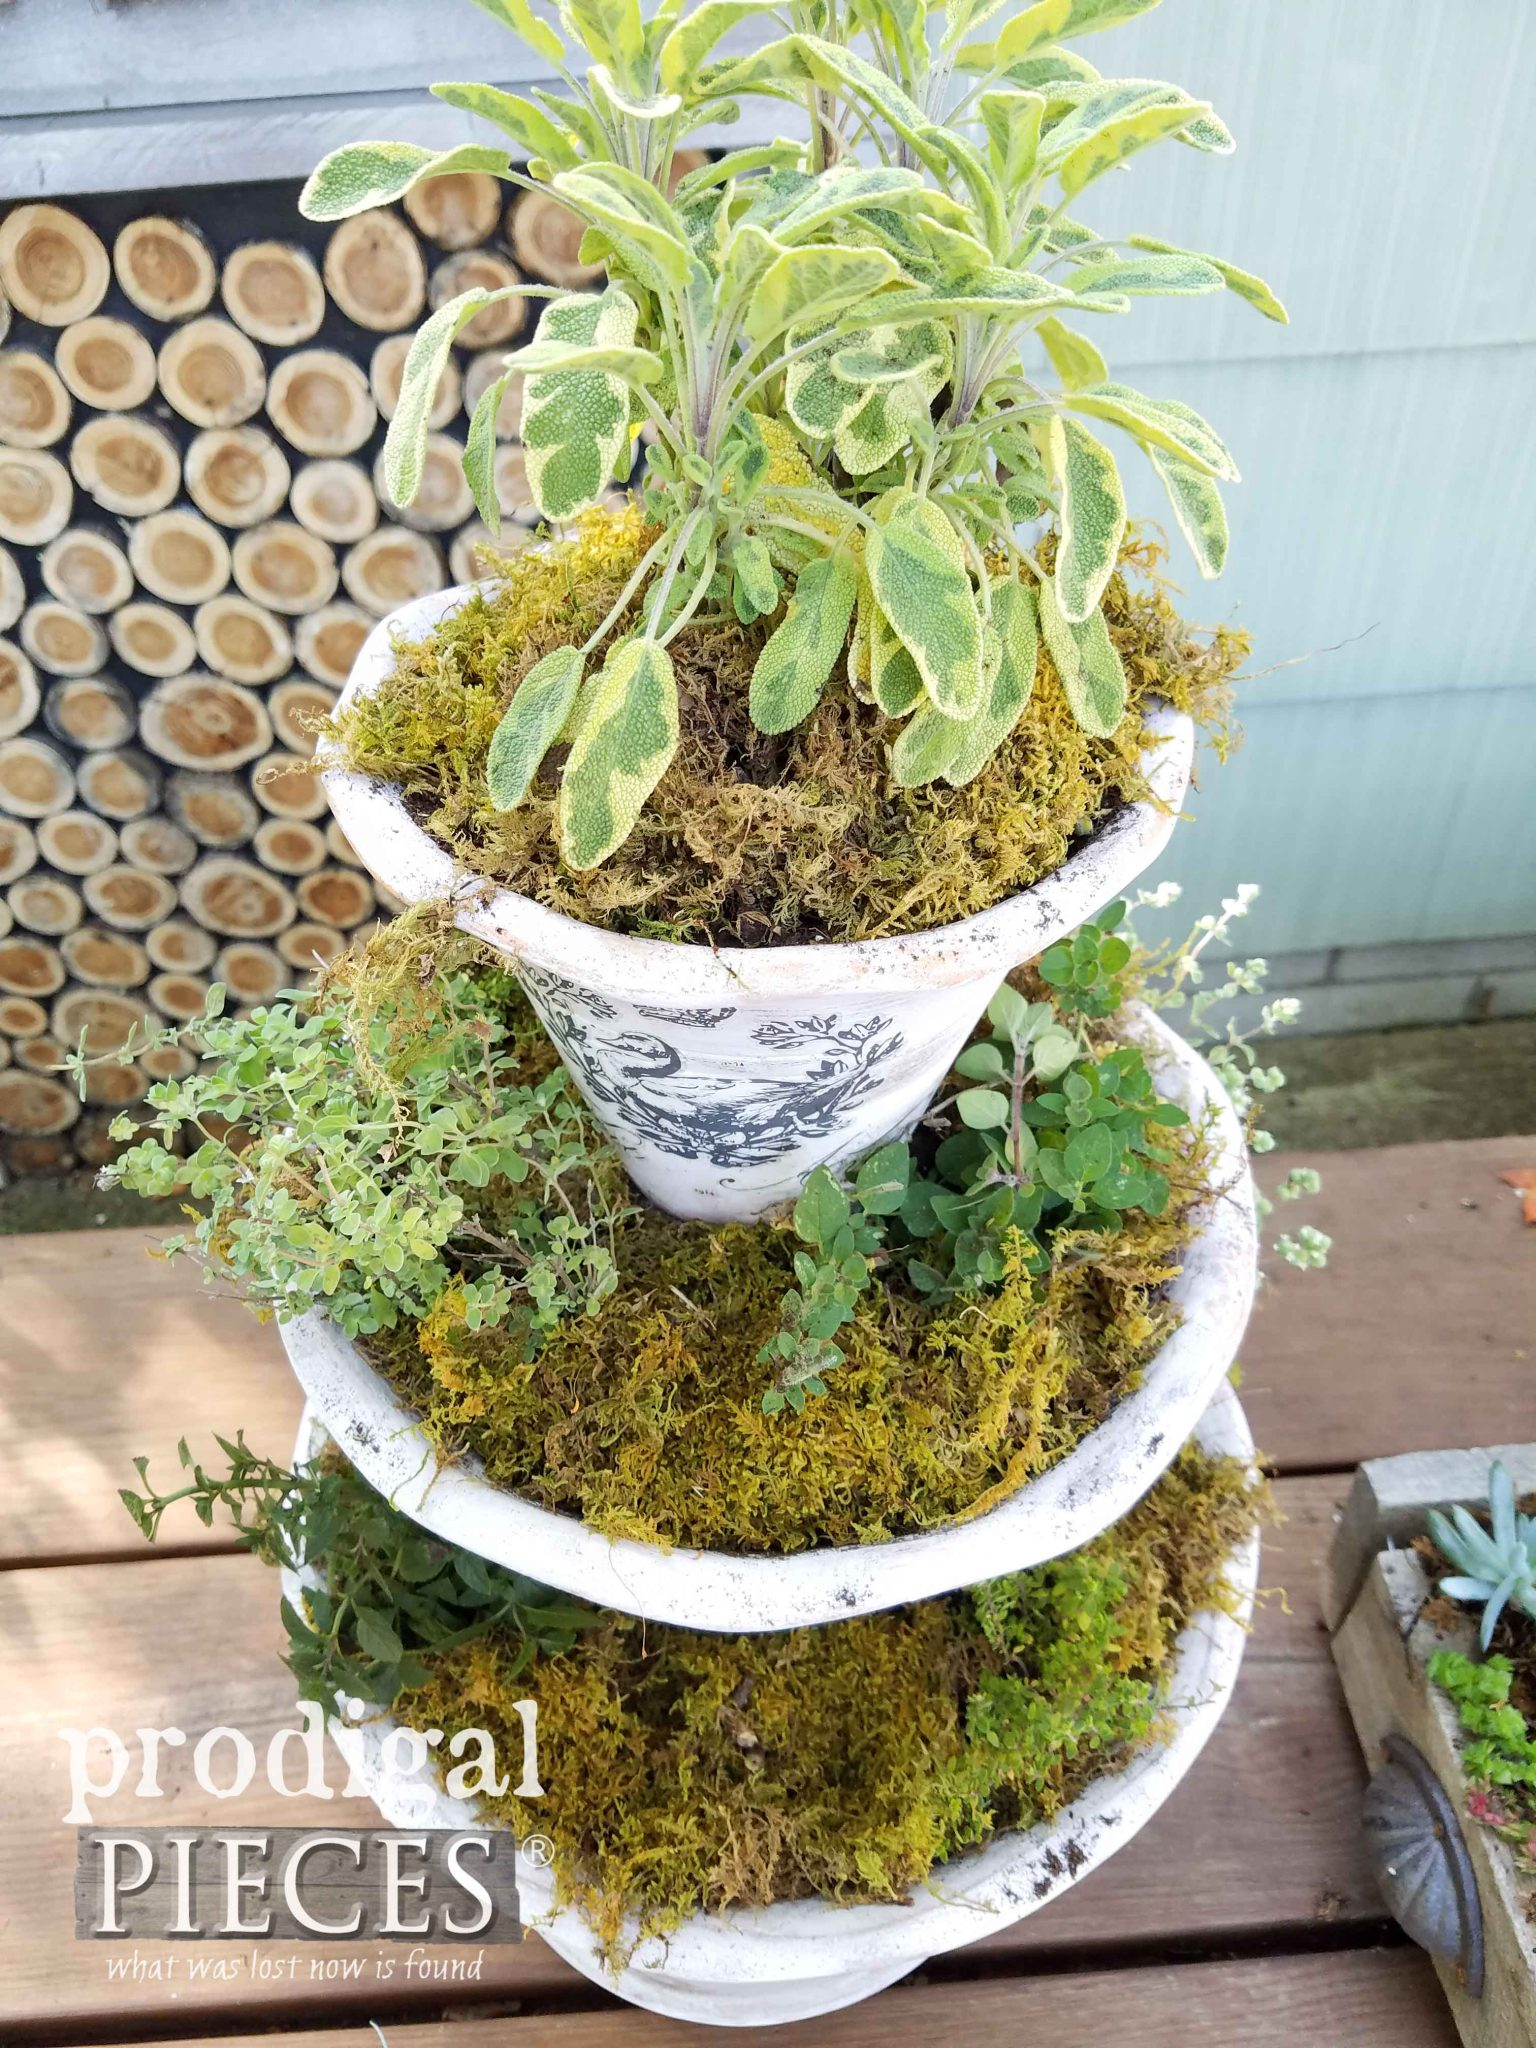 Tiered Planter with Herbs and Moss in a French Style by Prodigal Pieces | prodigalpieces.com